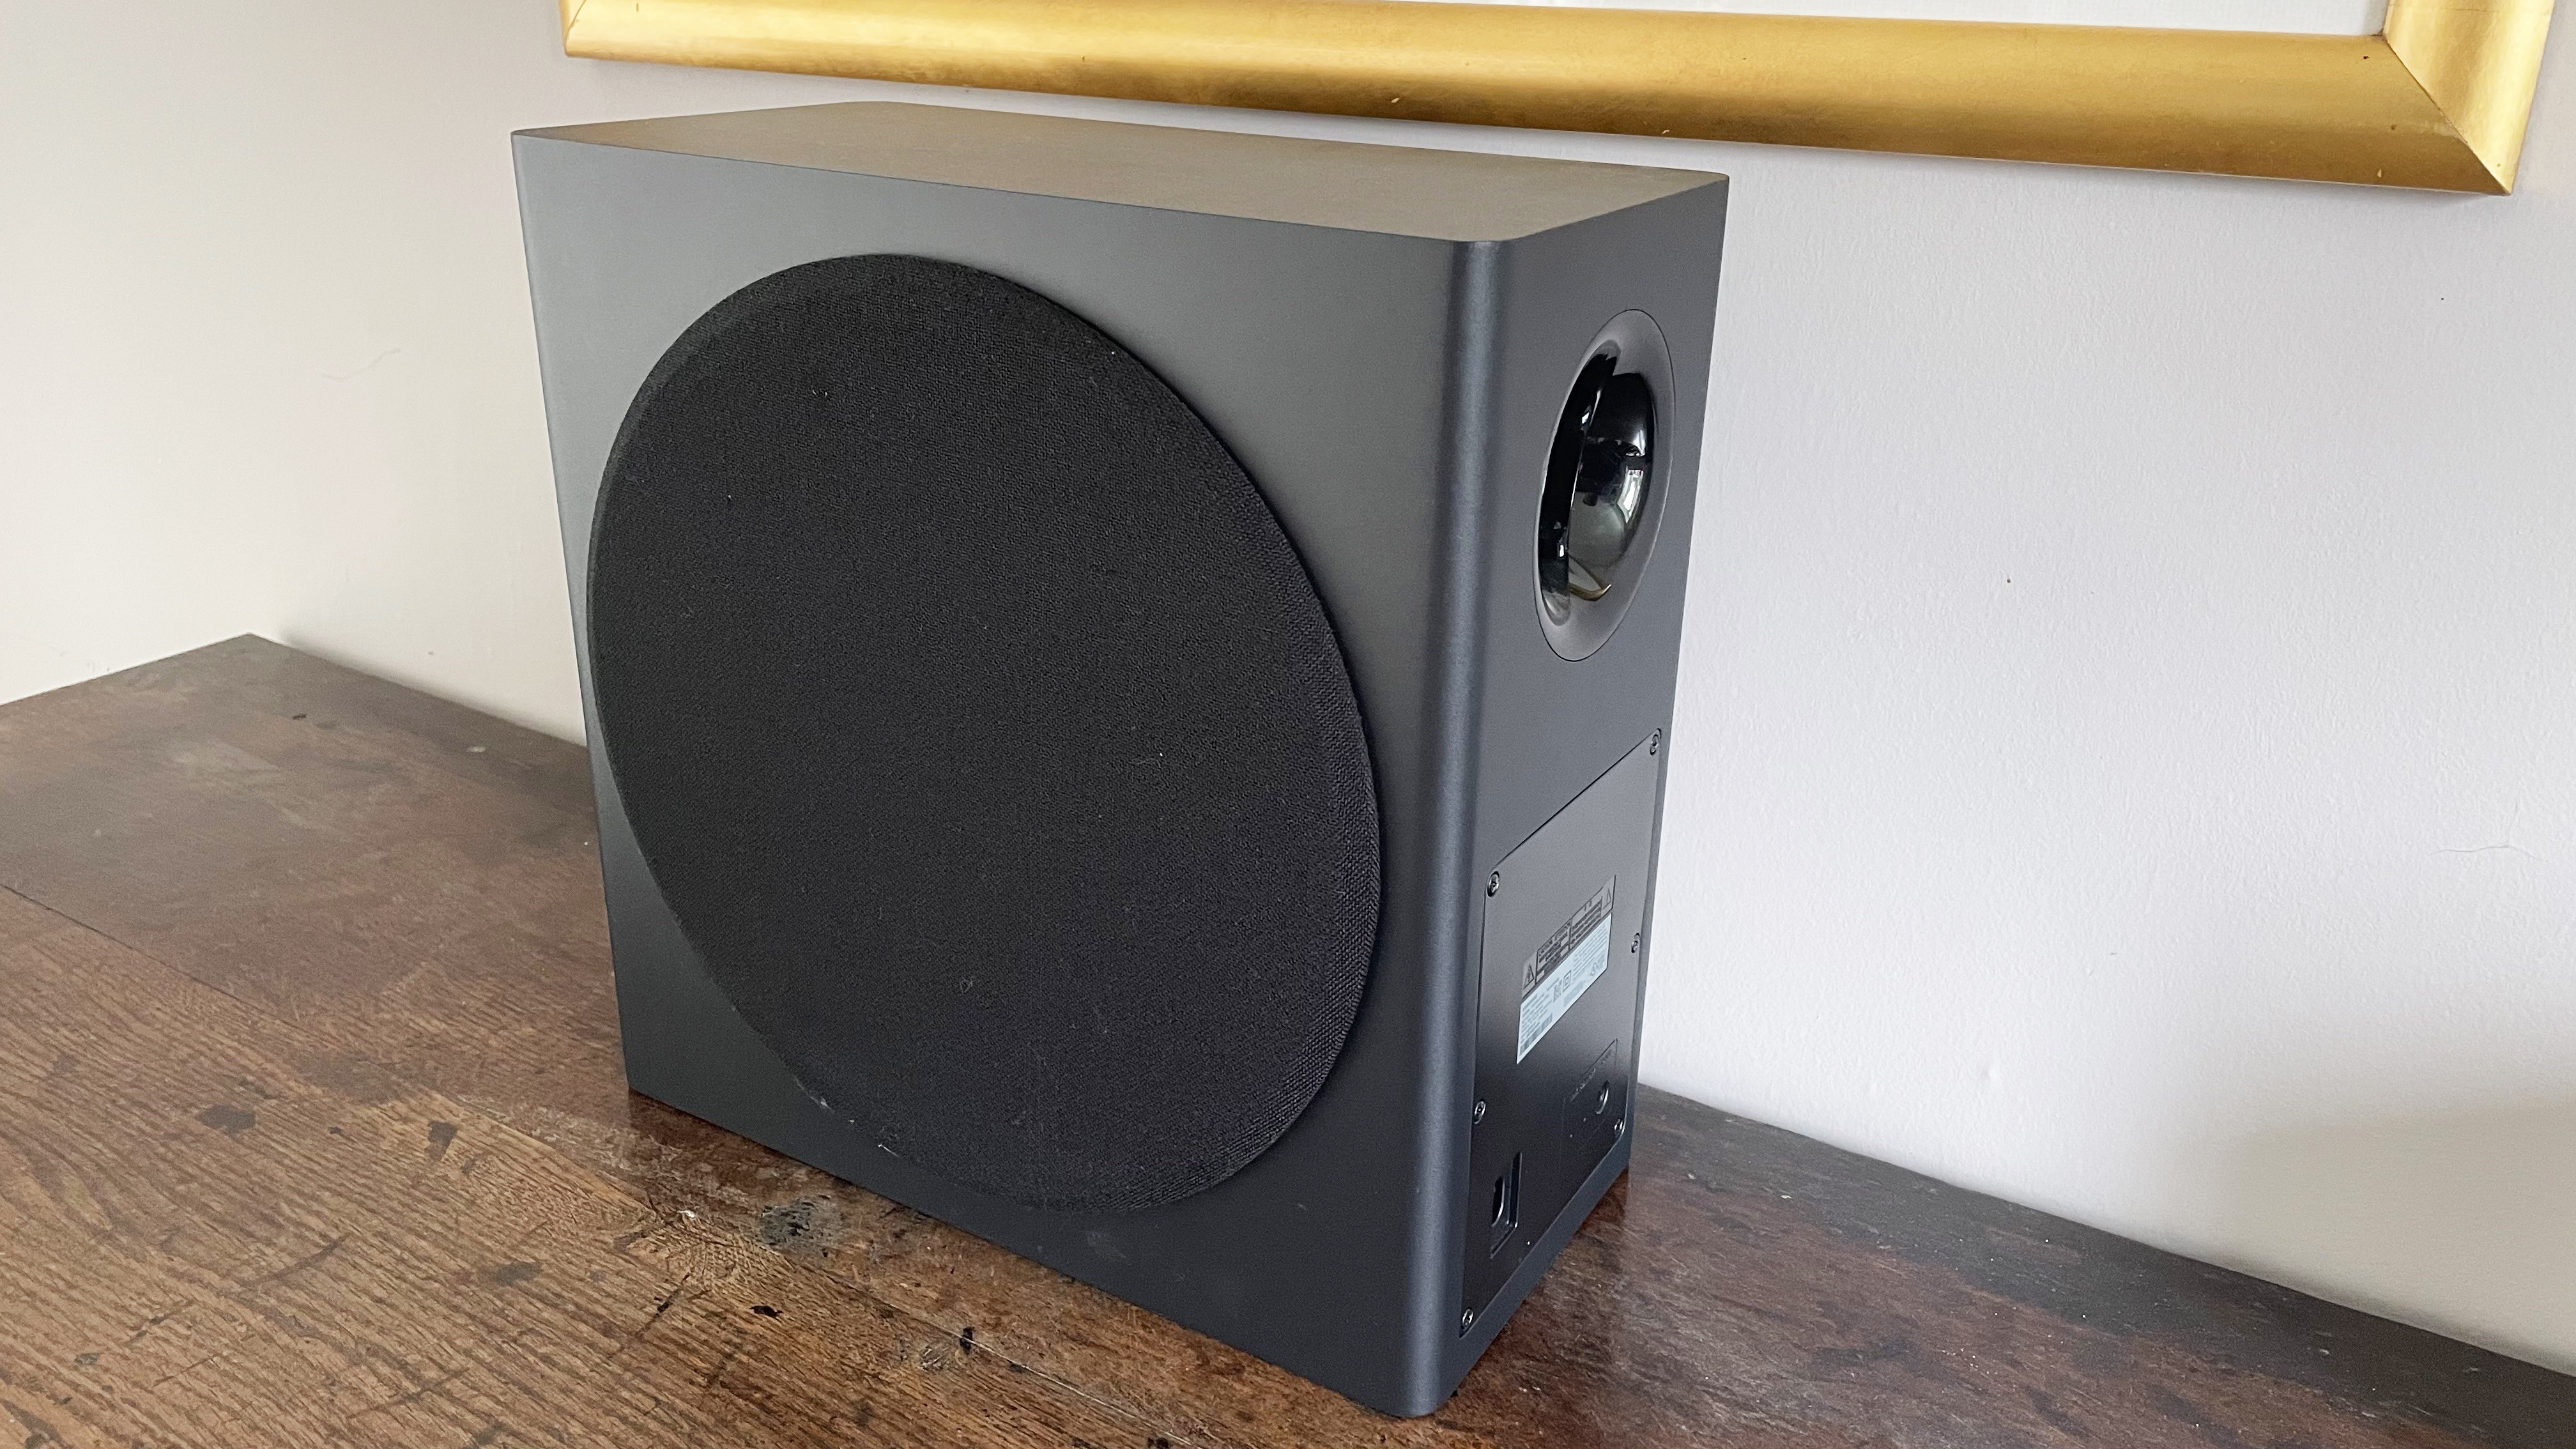 Samsung HW-Q950A subwoofer on its own